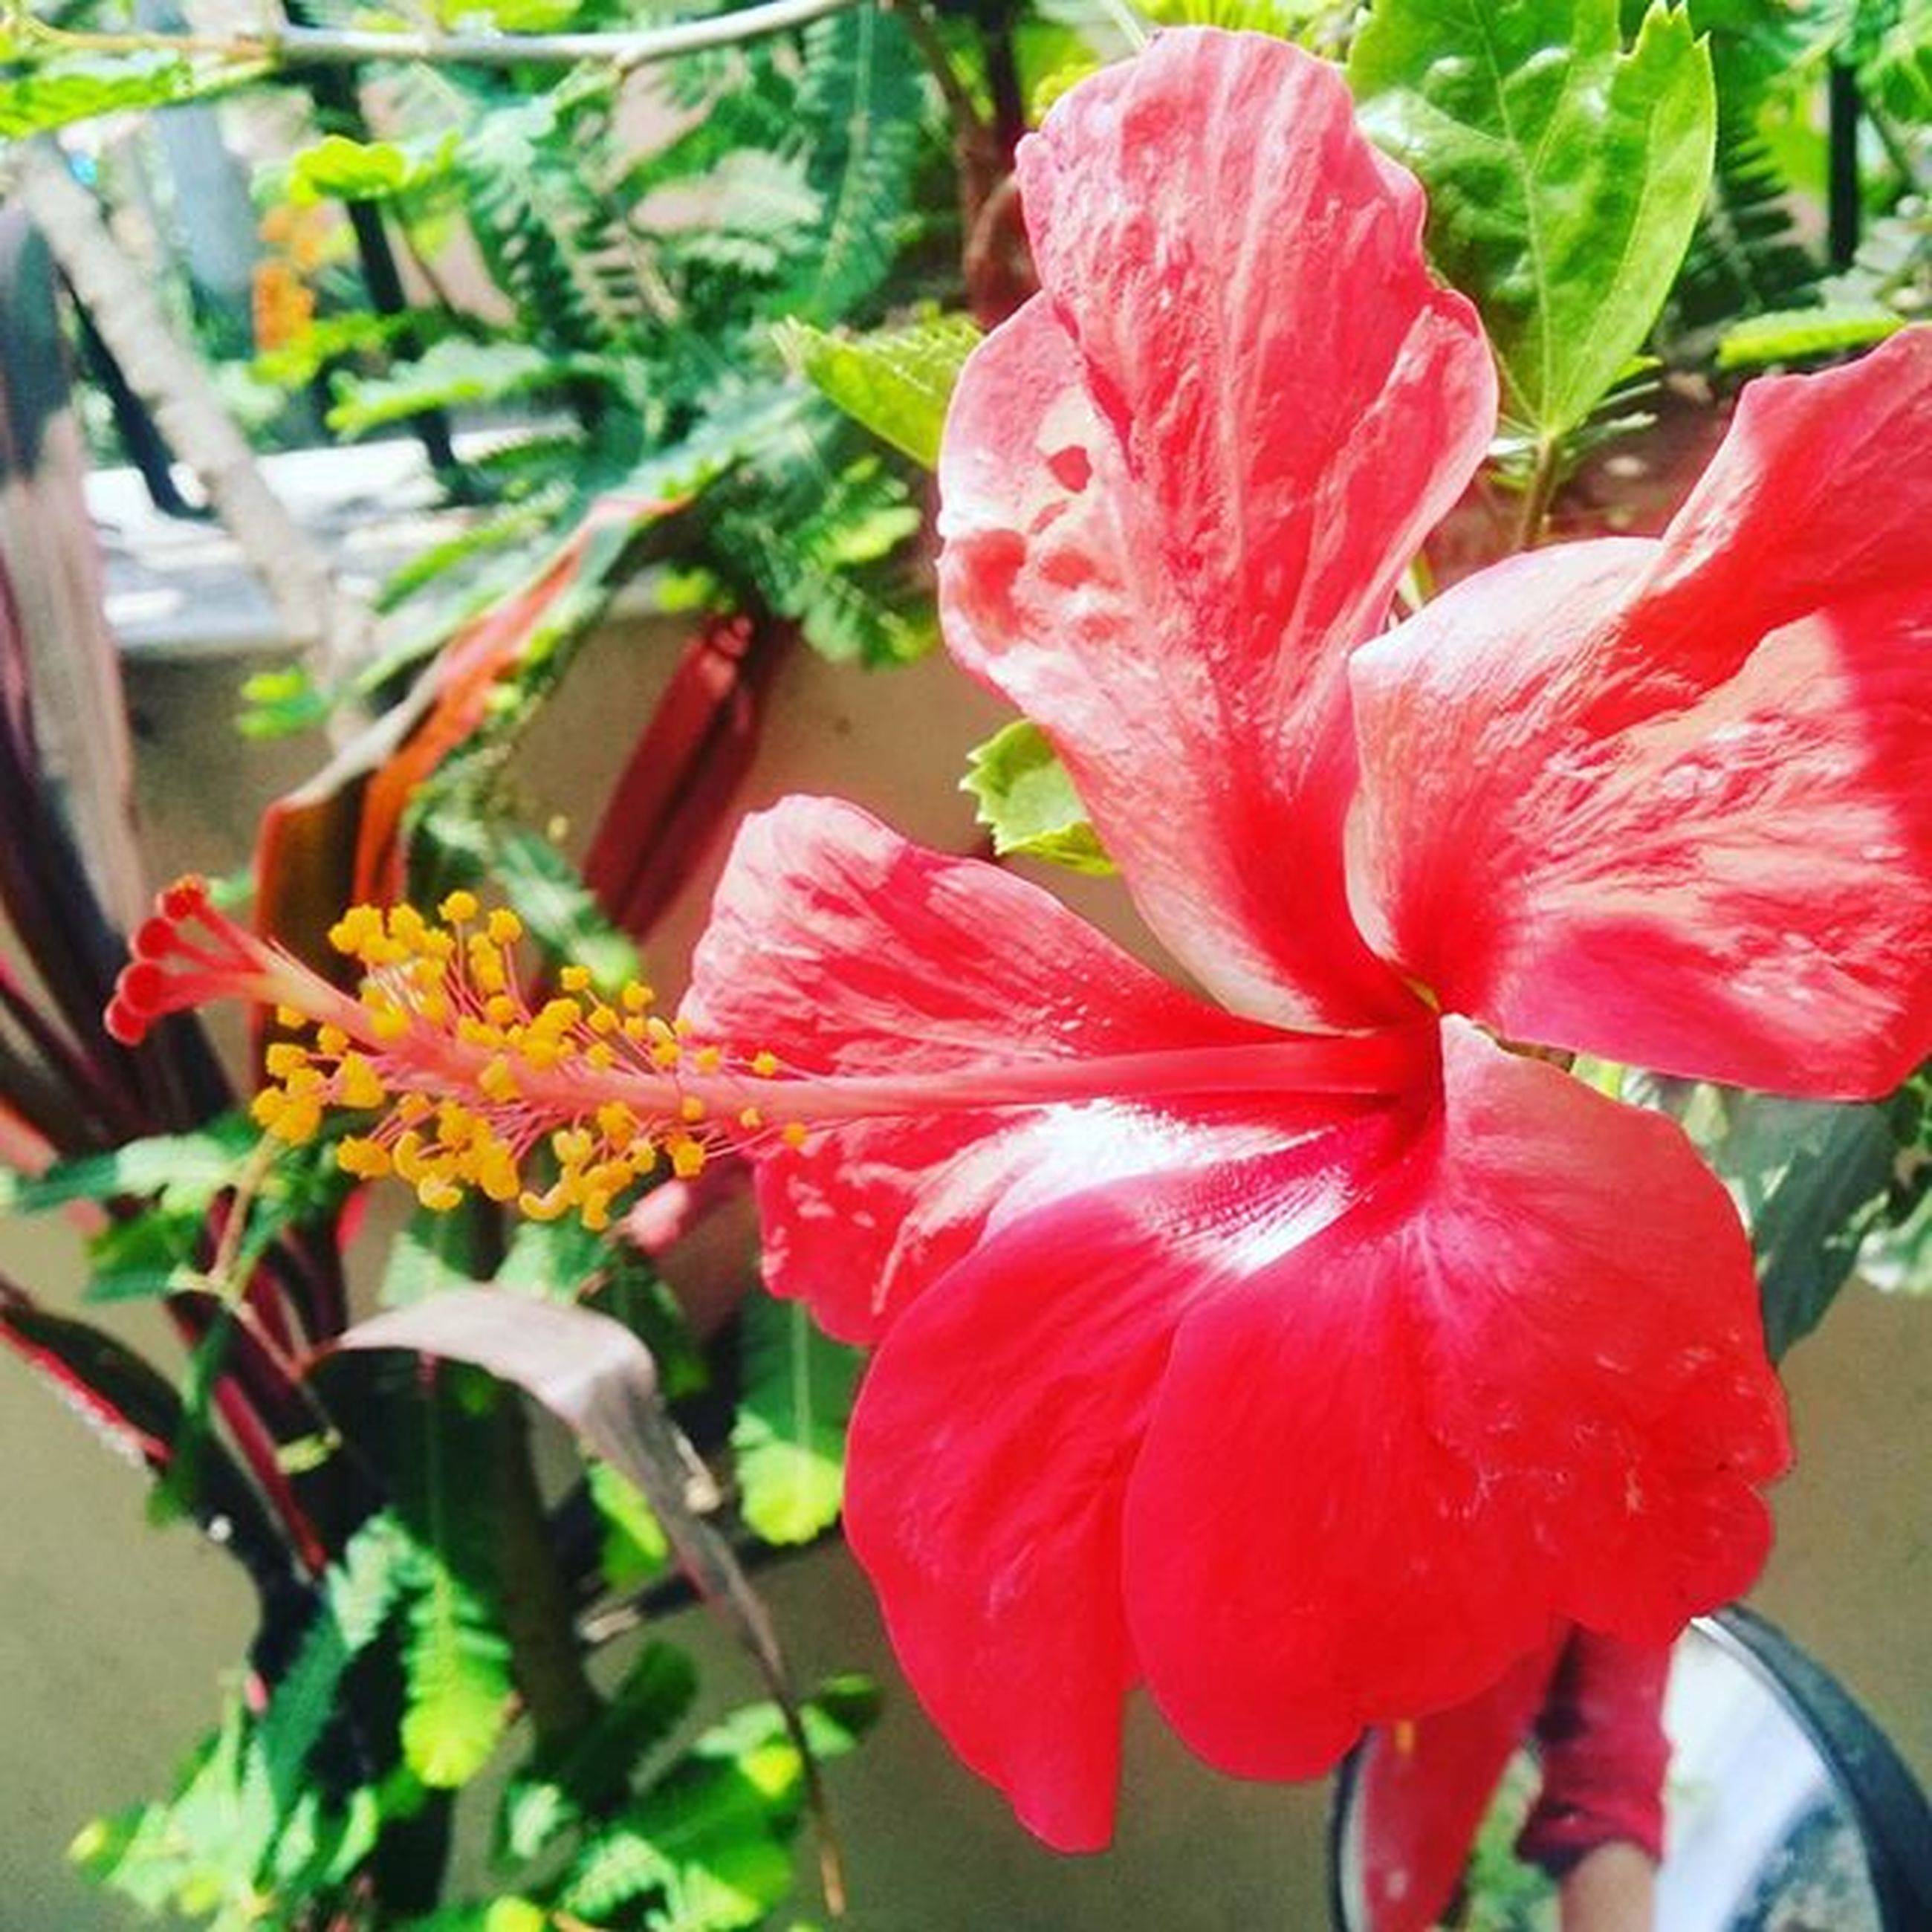 flower, petal, freshness, flower head, fragility, red, growth, blooming, beauty in nature, focus on foreground, close-up, plant, nature, stamen, pollen, in bloom, single flower, hibiscus, leaf, day